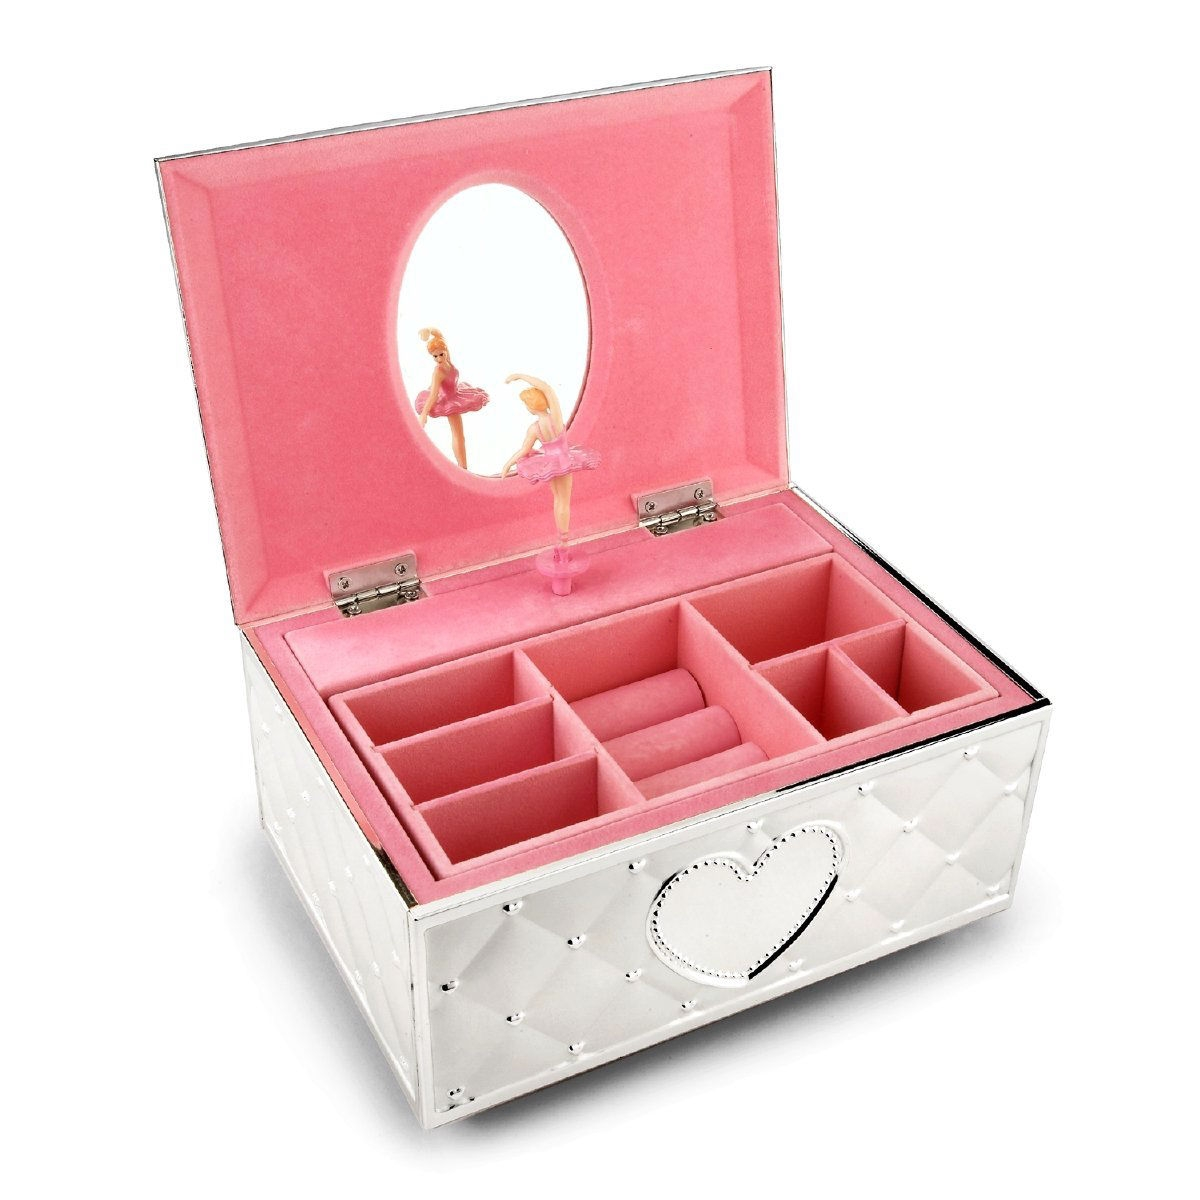 """Musical Fur Elise Girls Ballerina Keepsake Metal Pink Lined Jewelry Box, GLCMG3294 :  This Musical Fur Elise Girls Ballerina Keepsake Metal Pink Lined Jewelry Box has a perfectly poised ballerina balances en pointe when you open this charming jewelry box. The outside of the box bears a sculpted quilt pattern with dozens of tiny hearts - plus a large heart on the front and top. Inside, the pink-lined box has compartments for rings and a little girl's favorite things. Crafted of metal; Plays """"Für Elise""""."""